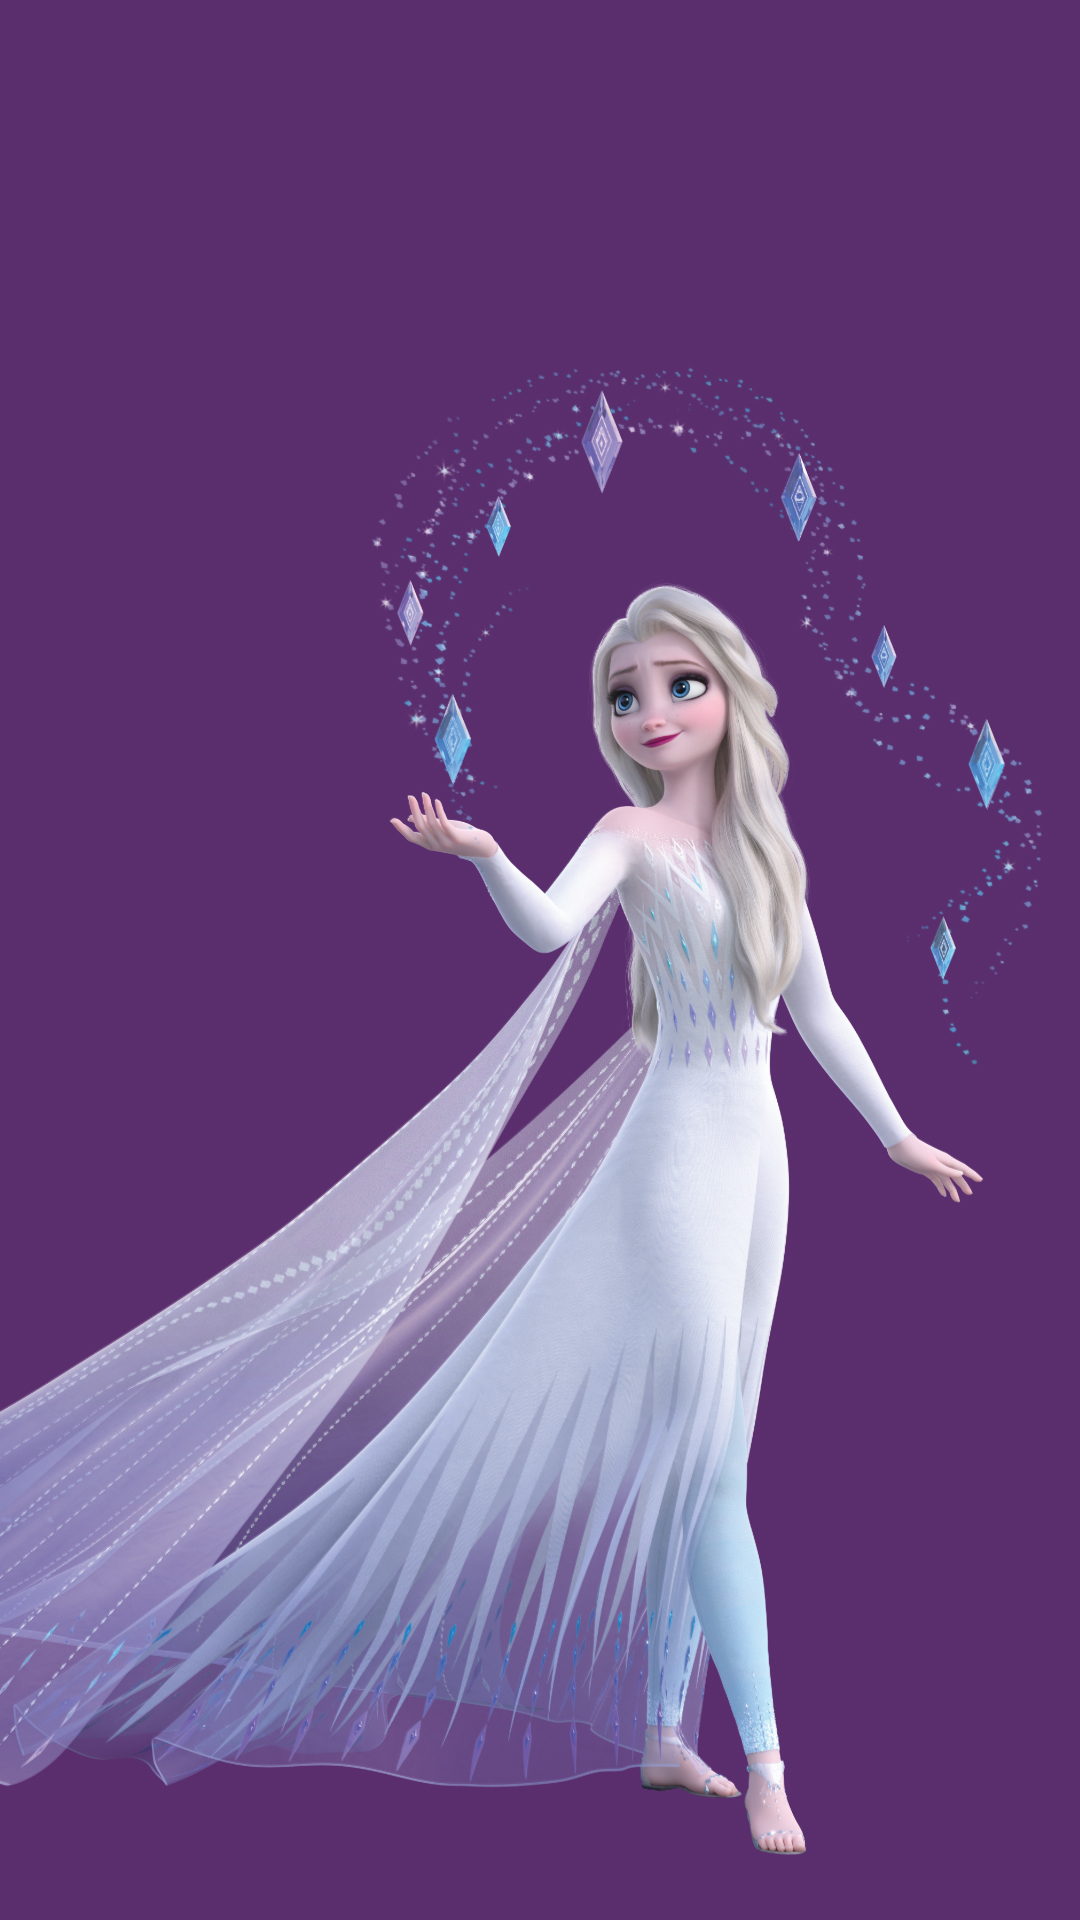 15 New Frozen 2 Hd Wallpapers With Elsa In White Dress And Her Hair Down Desktop And Mobile Youloveit Com